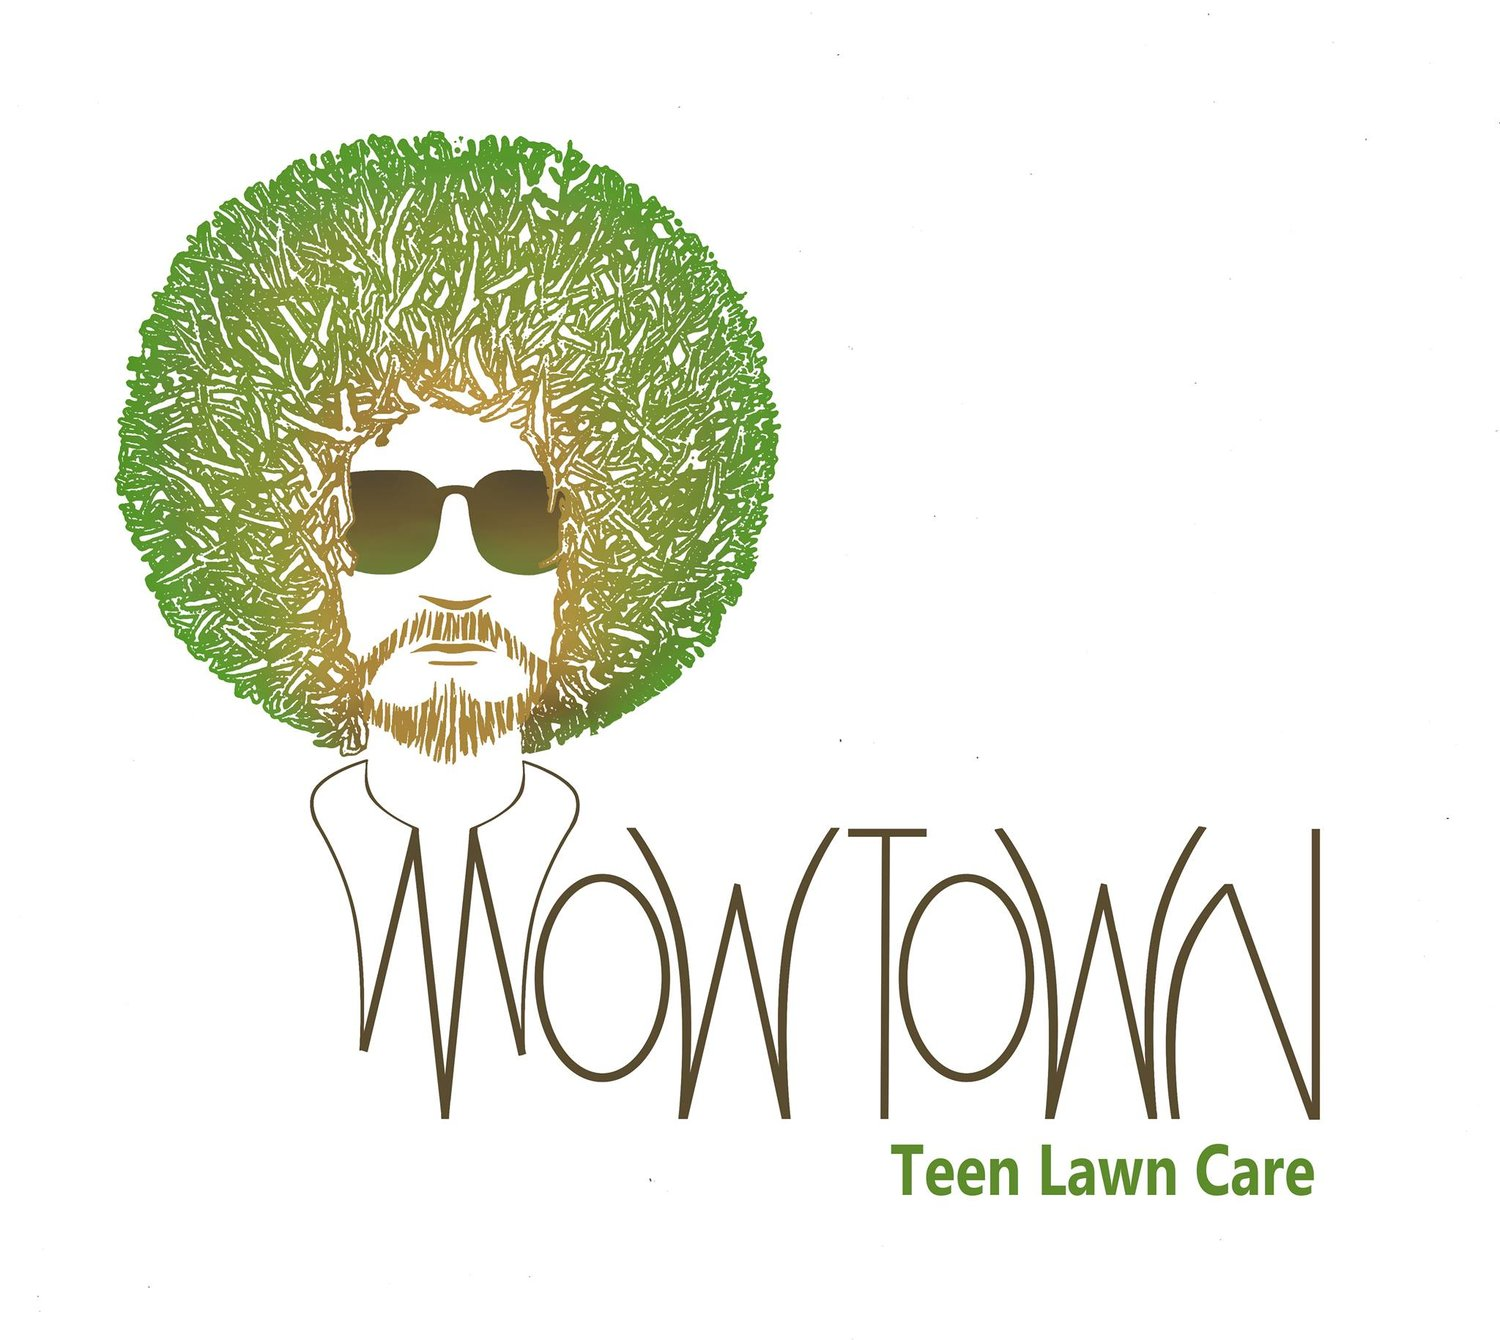 Mowtown Teen Lawn Care